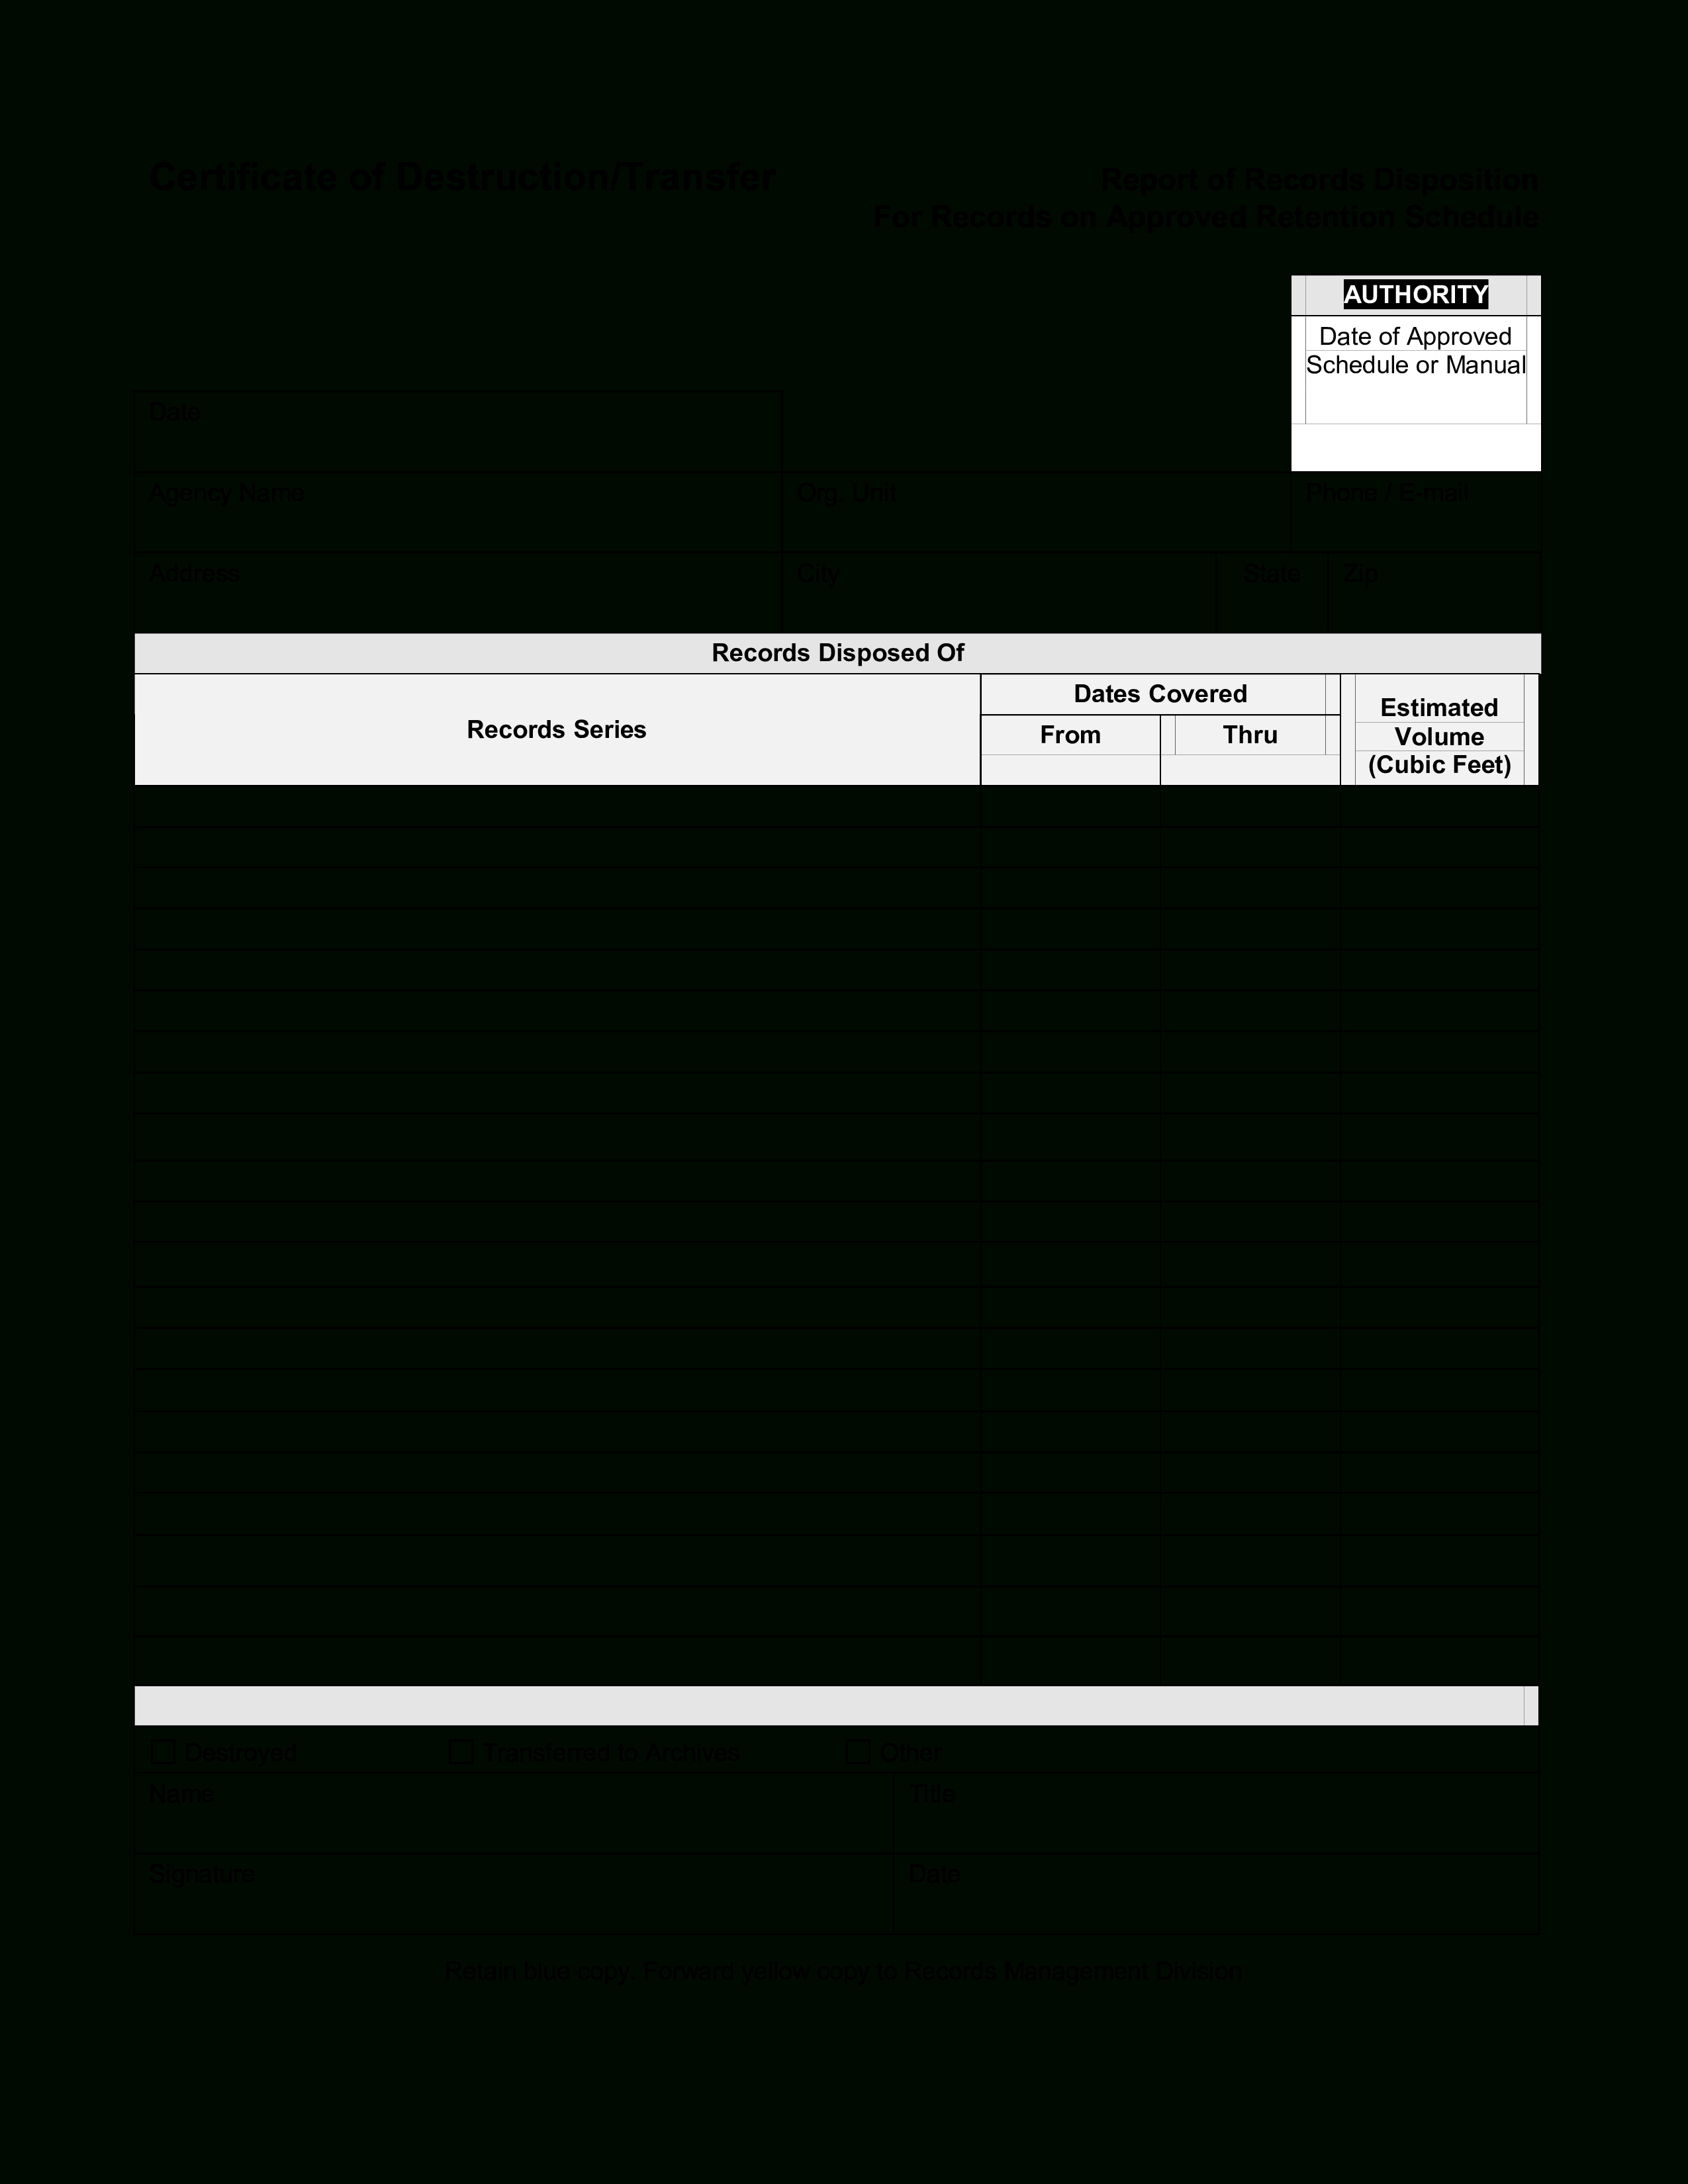 Blank Certificate Of Destruction - How To Create A With Certificate Of Destruction Template